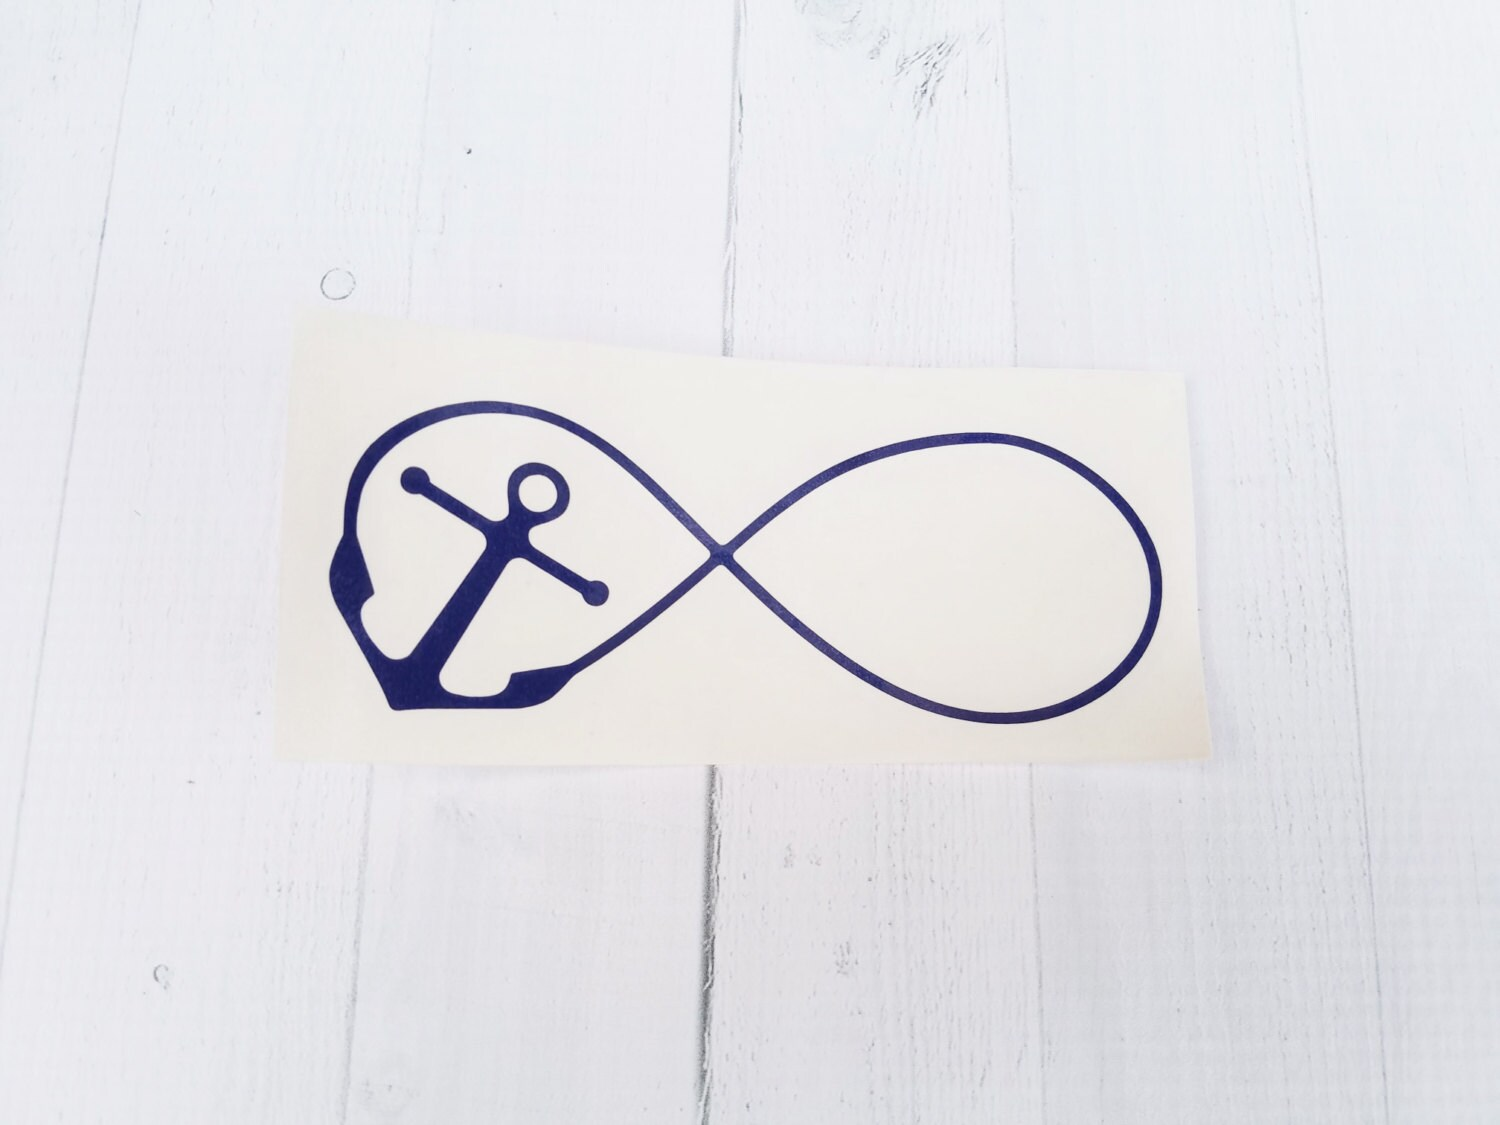 Infinity anchor decal infinity decal anchor decal anchor zoom buycottarizona Images